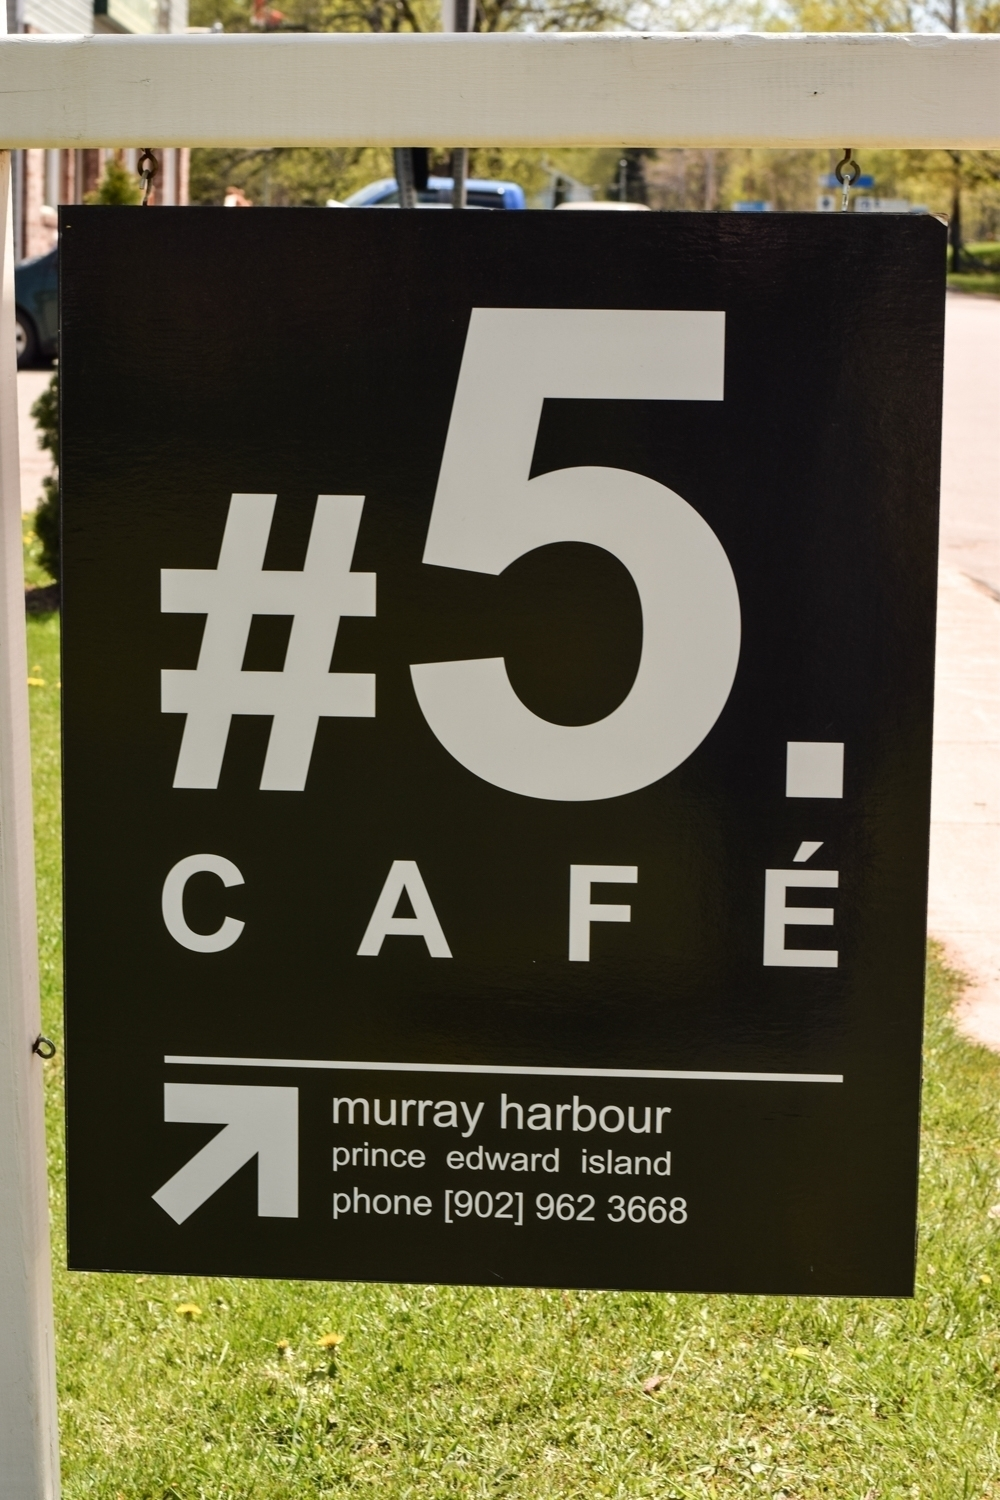 #5 Café, Murray Harbour, PEI